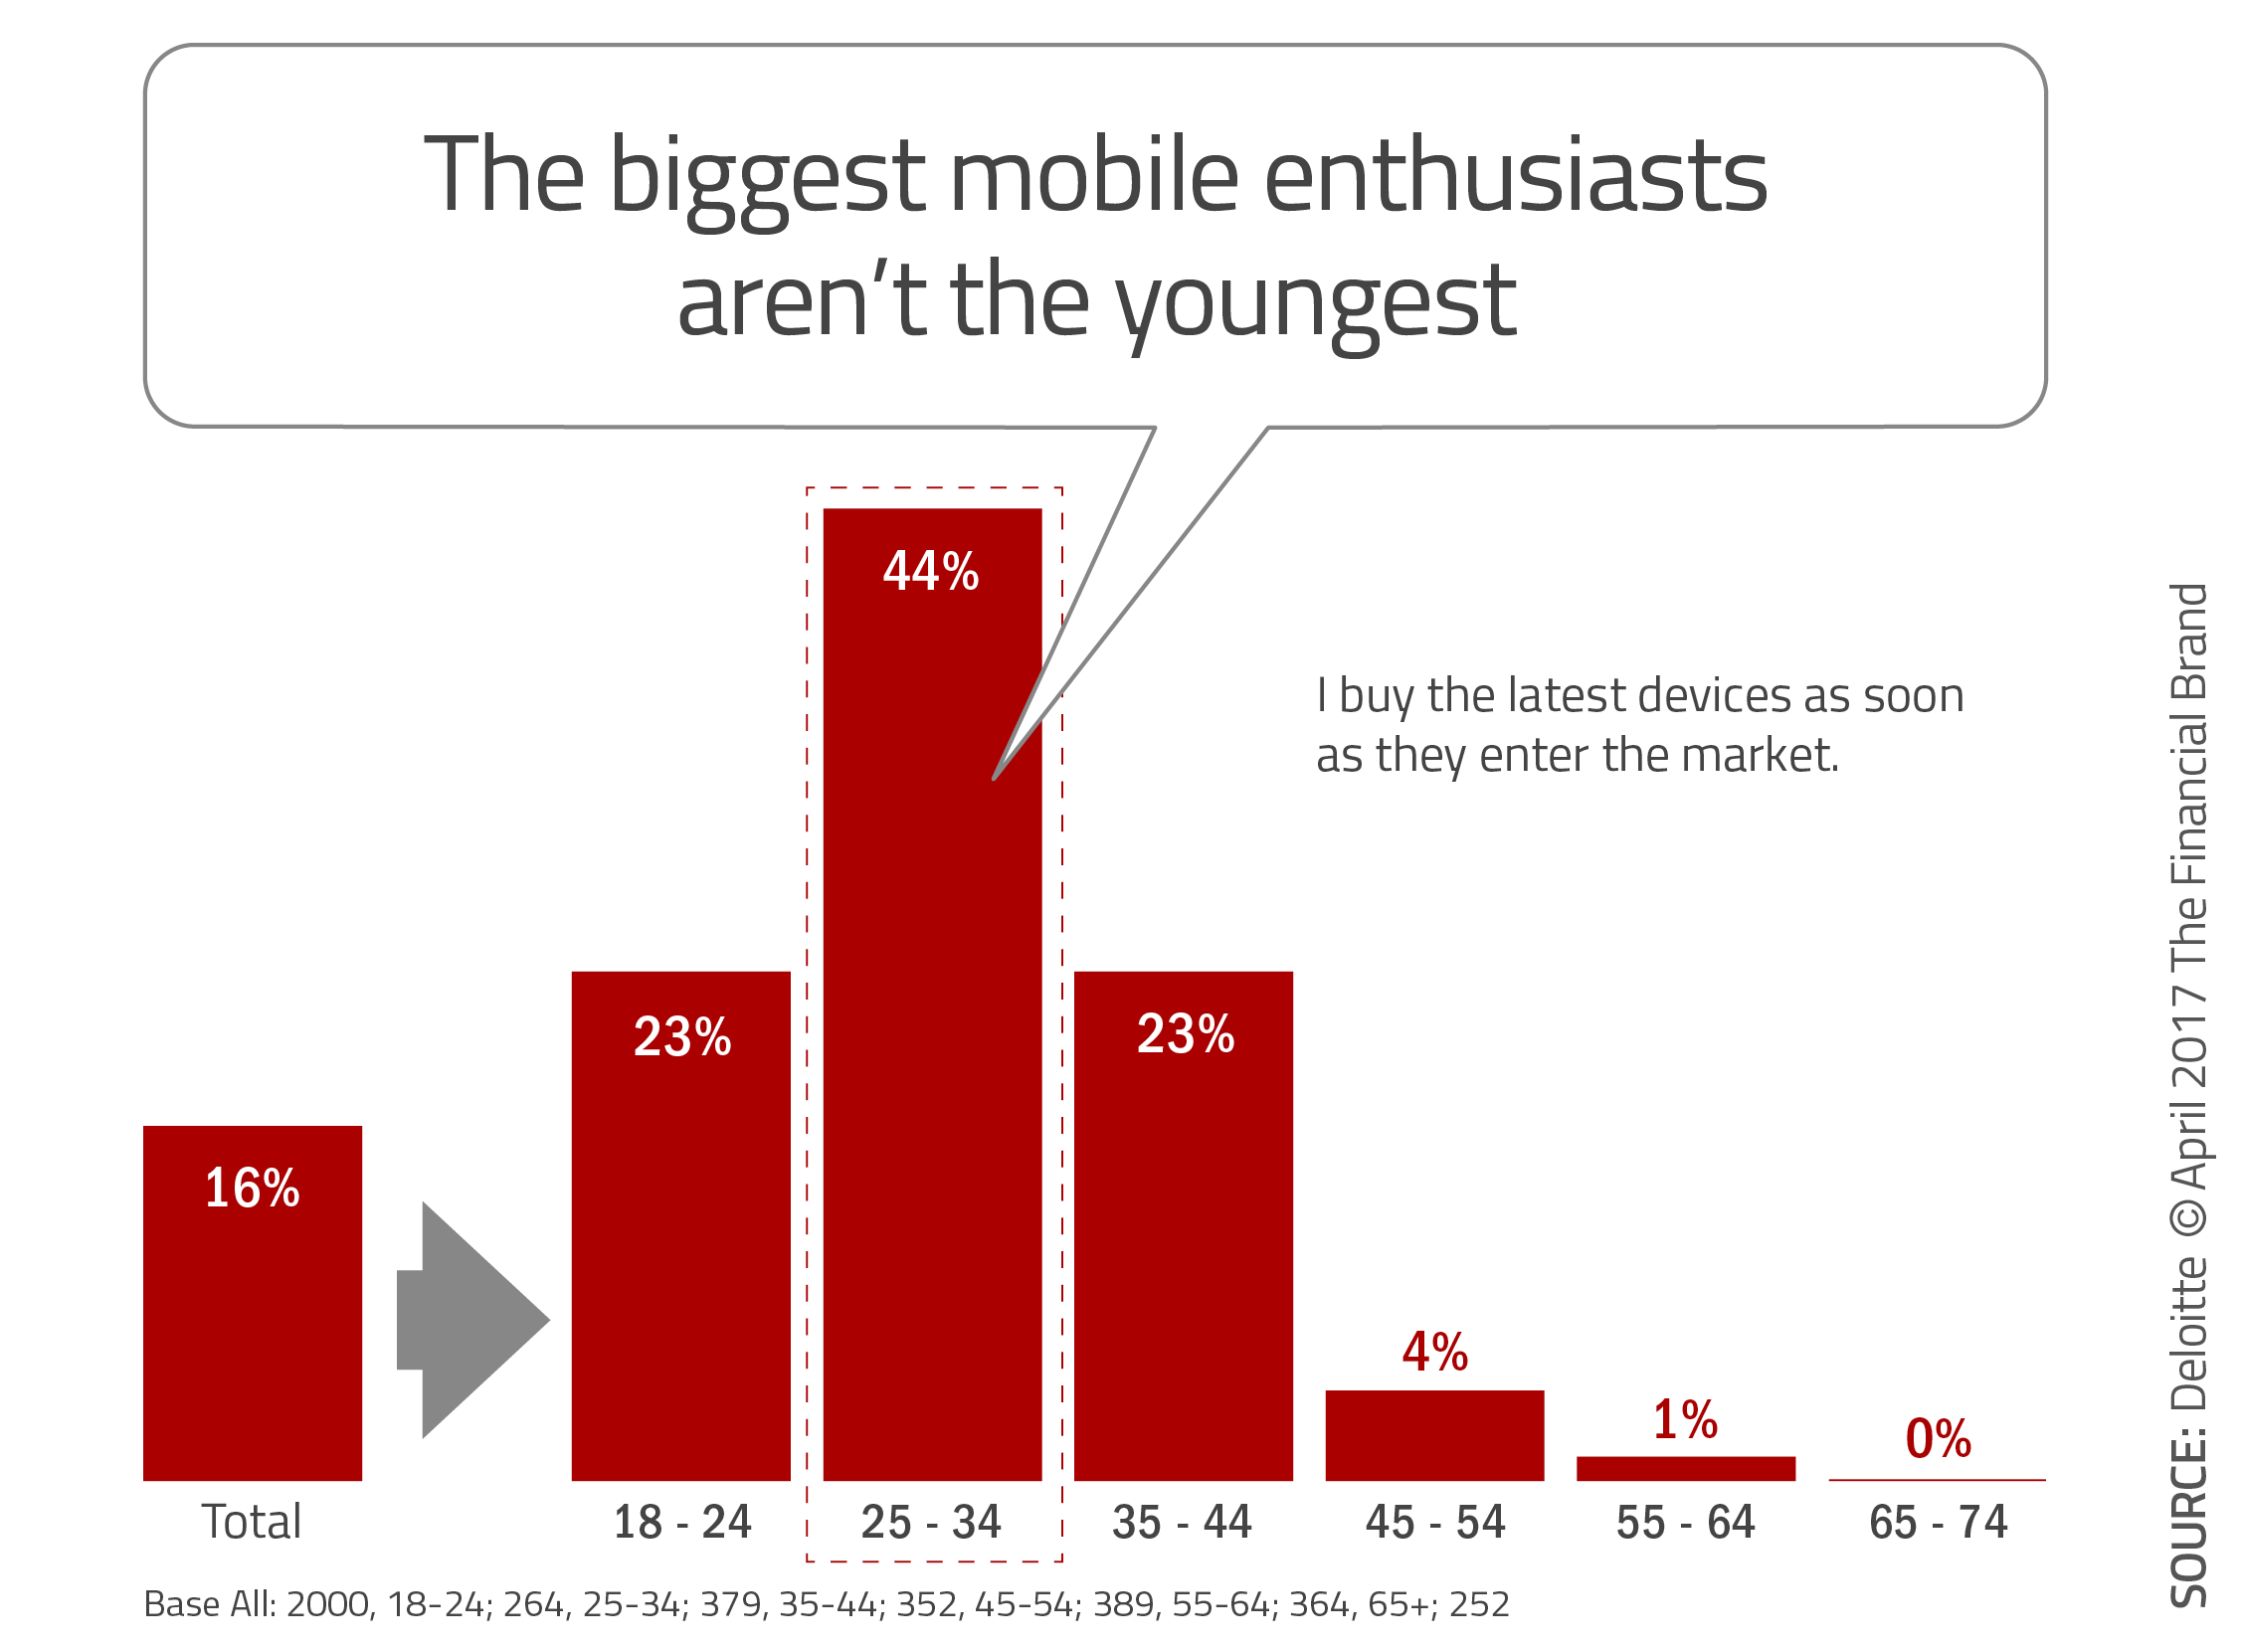 Banking Fails to Serve Older 'Digital Native' Consumers